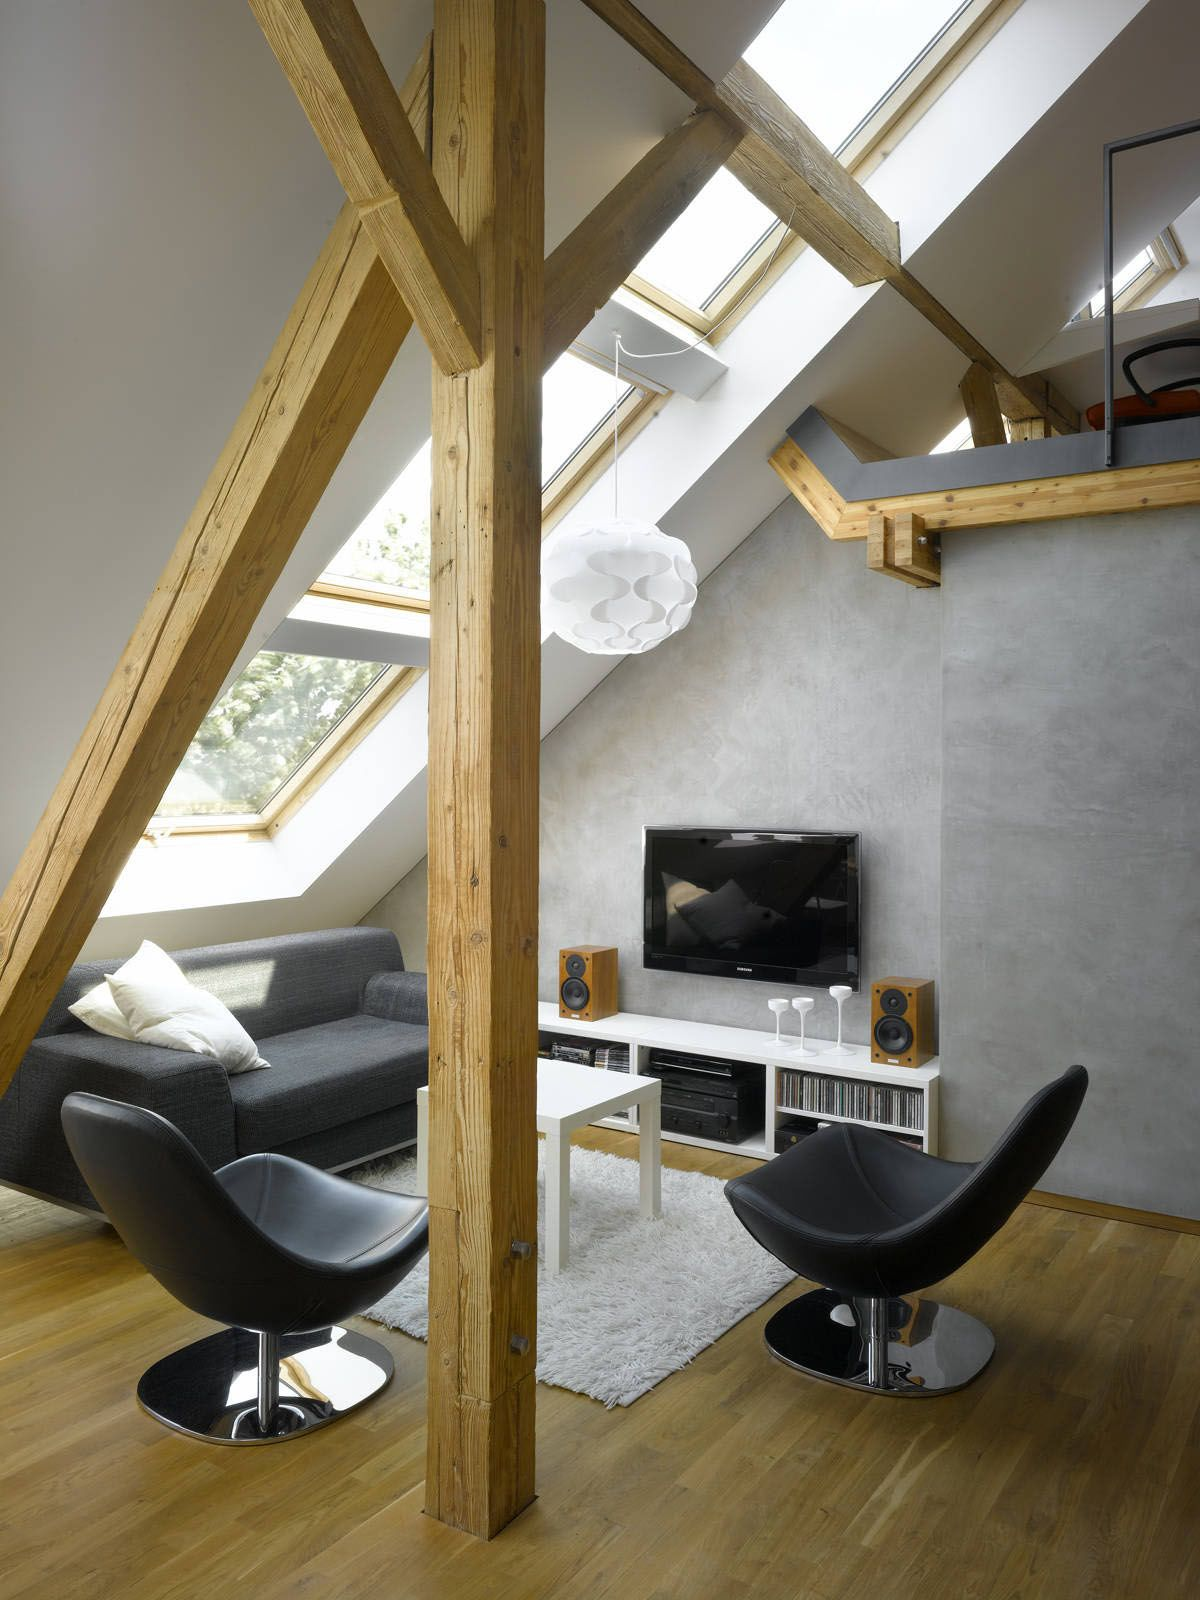 Small Attic Loft Apartment In Prague Idesignarch Interior Design Architecture Decorating